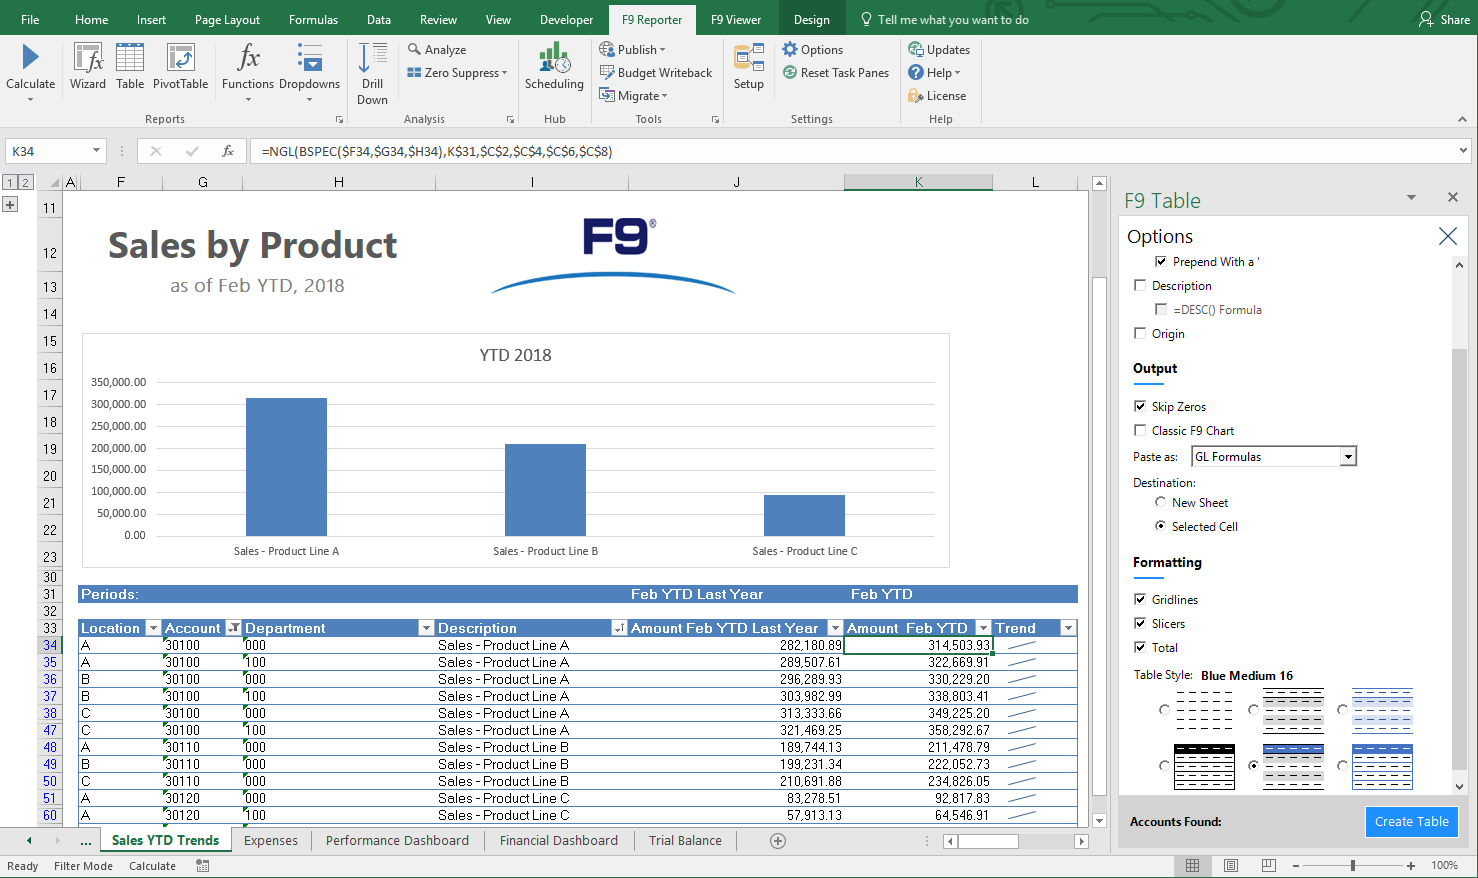 F9 ReportWriter | F9 Financial Reporting